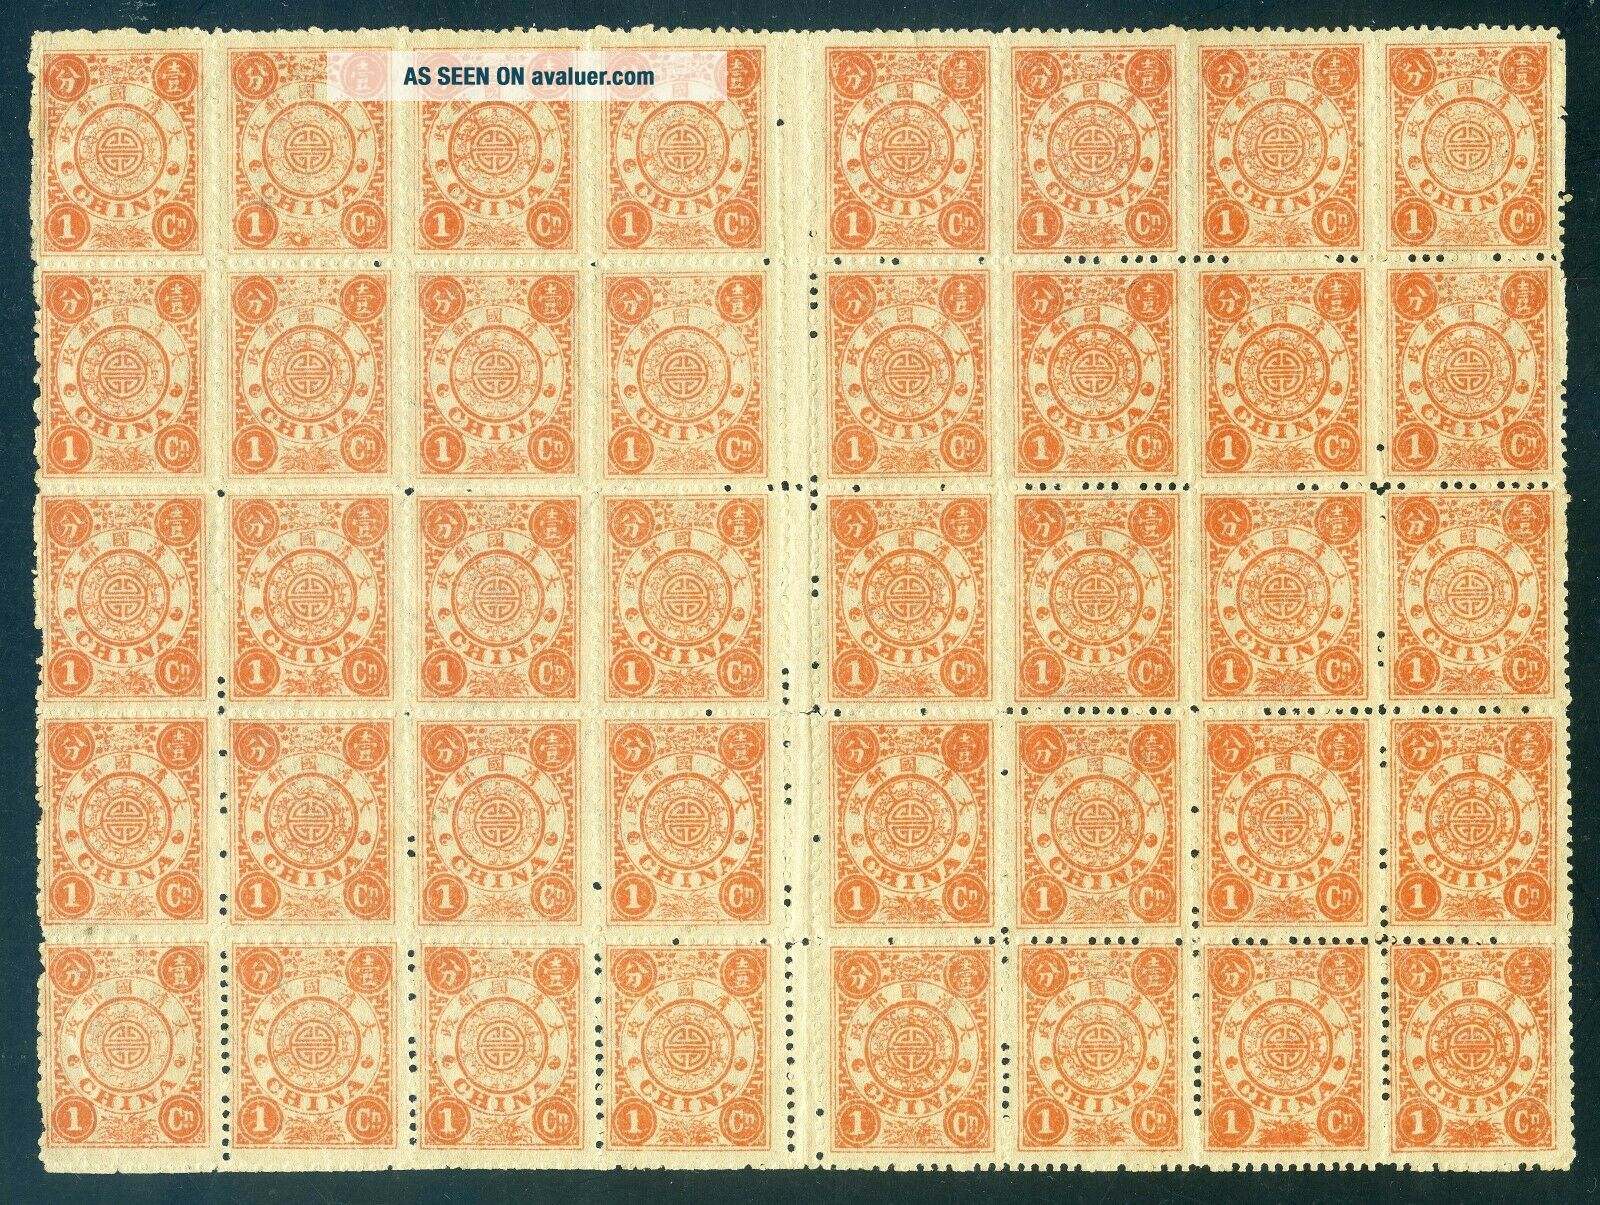 1894 Dowager 1cd complete sheet of 40 never hinged Very Rare